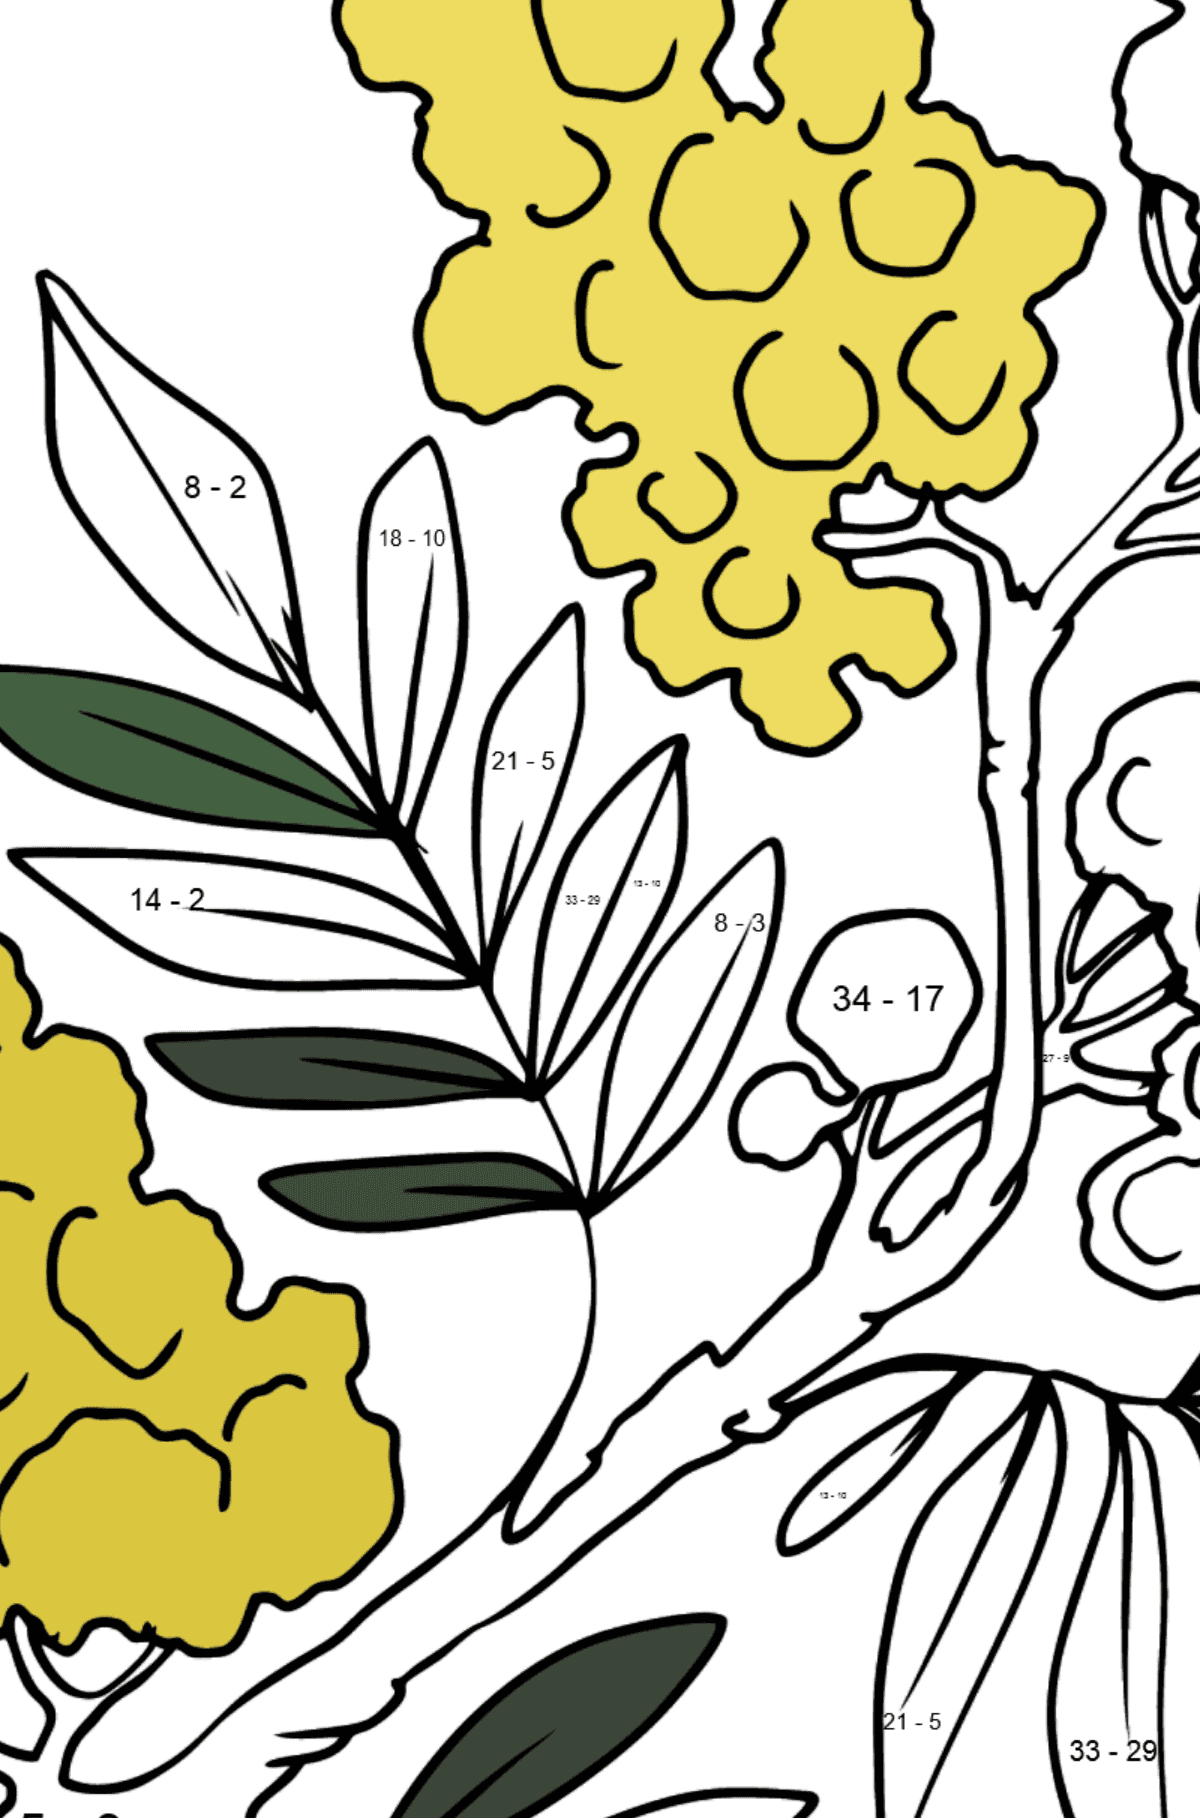 Flower Coloring Page - Mimosa - Math Coloring - Subtraction for Kids